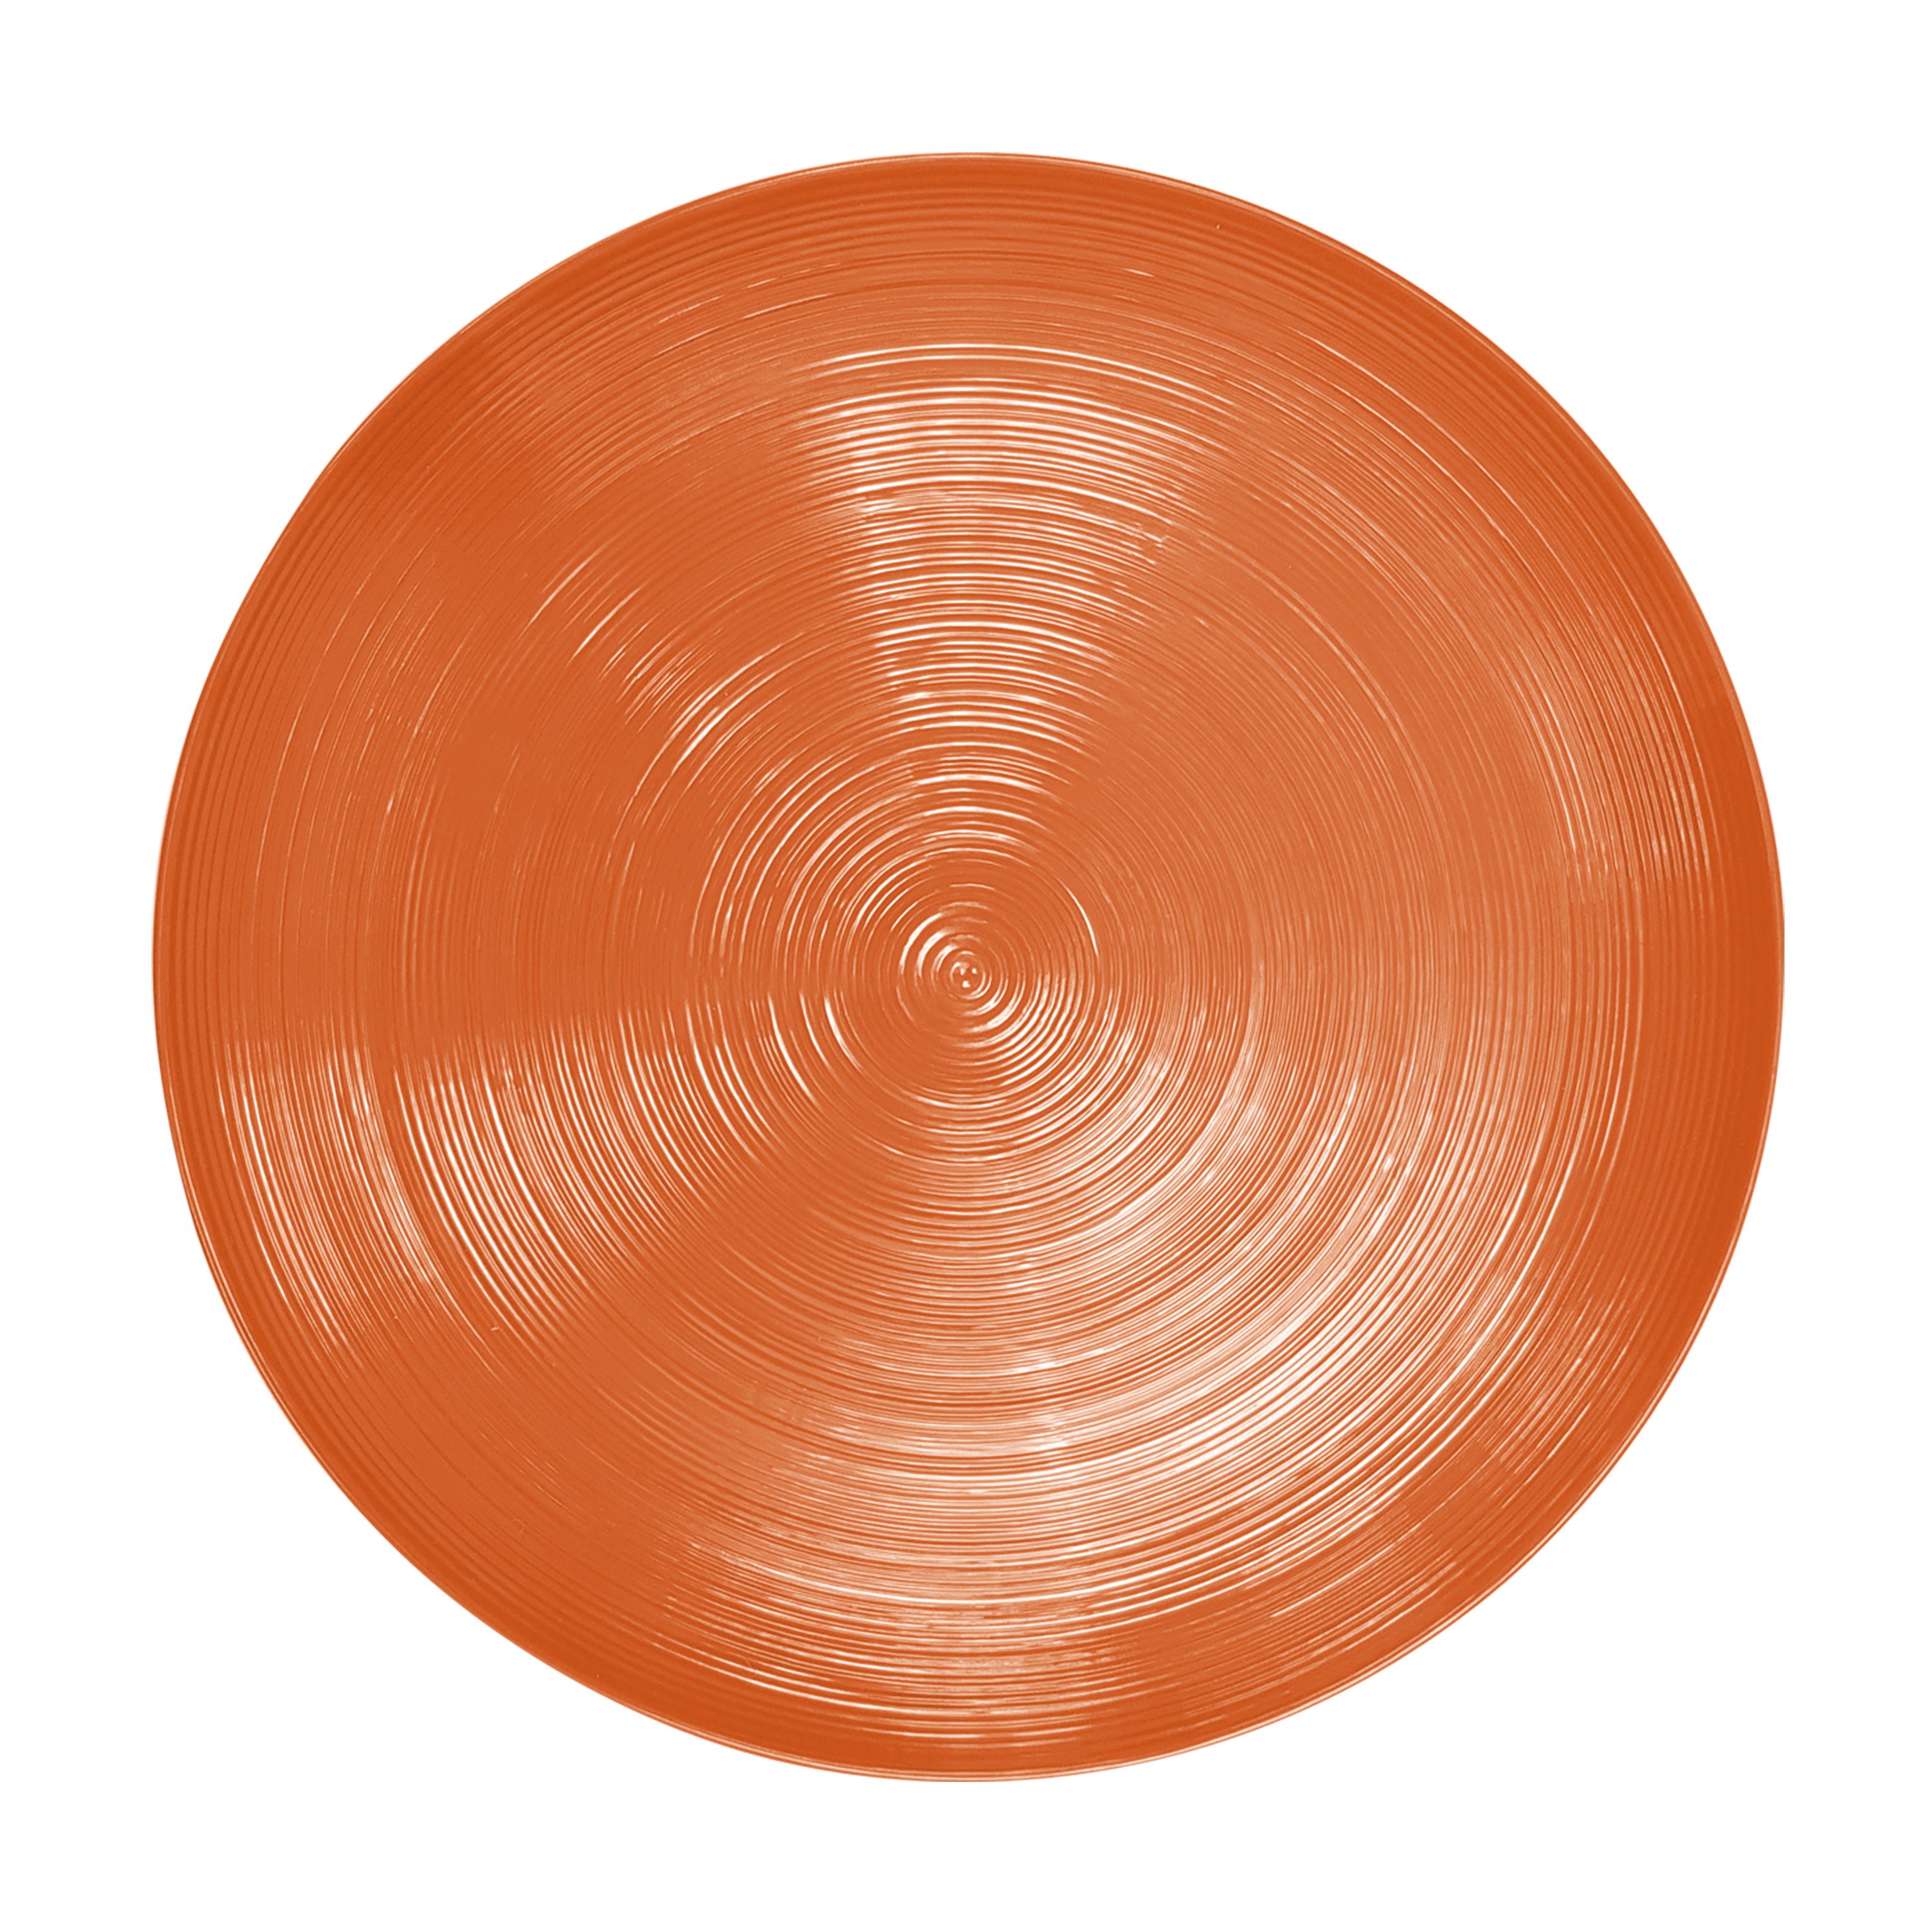 American Conventional Plate & Bowl Sets, Orange, 12-piece set slideshow image 5